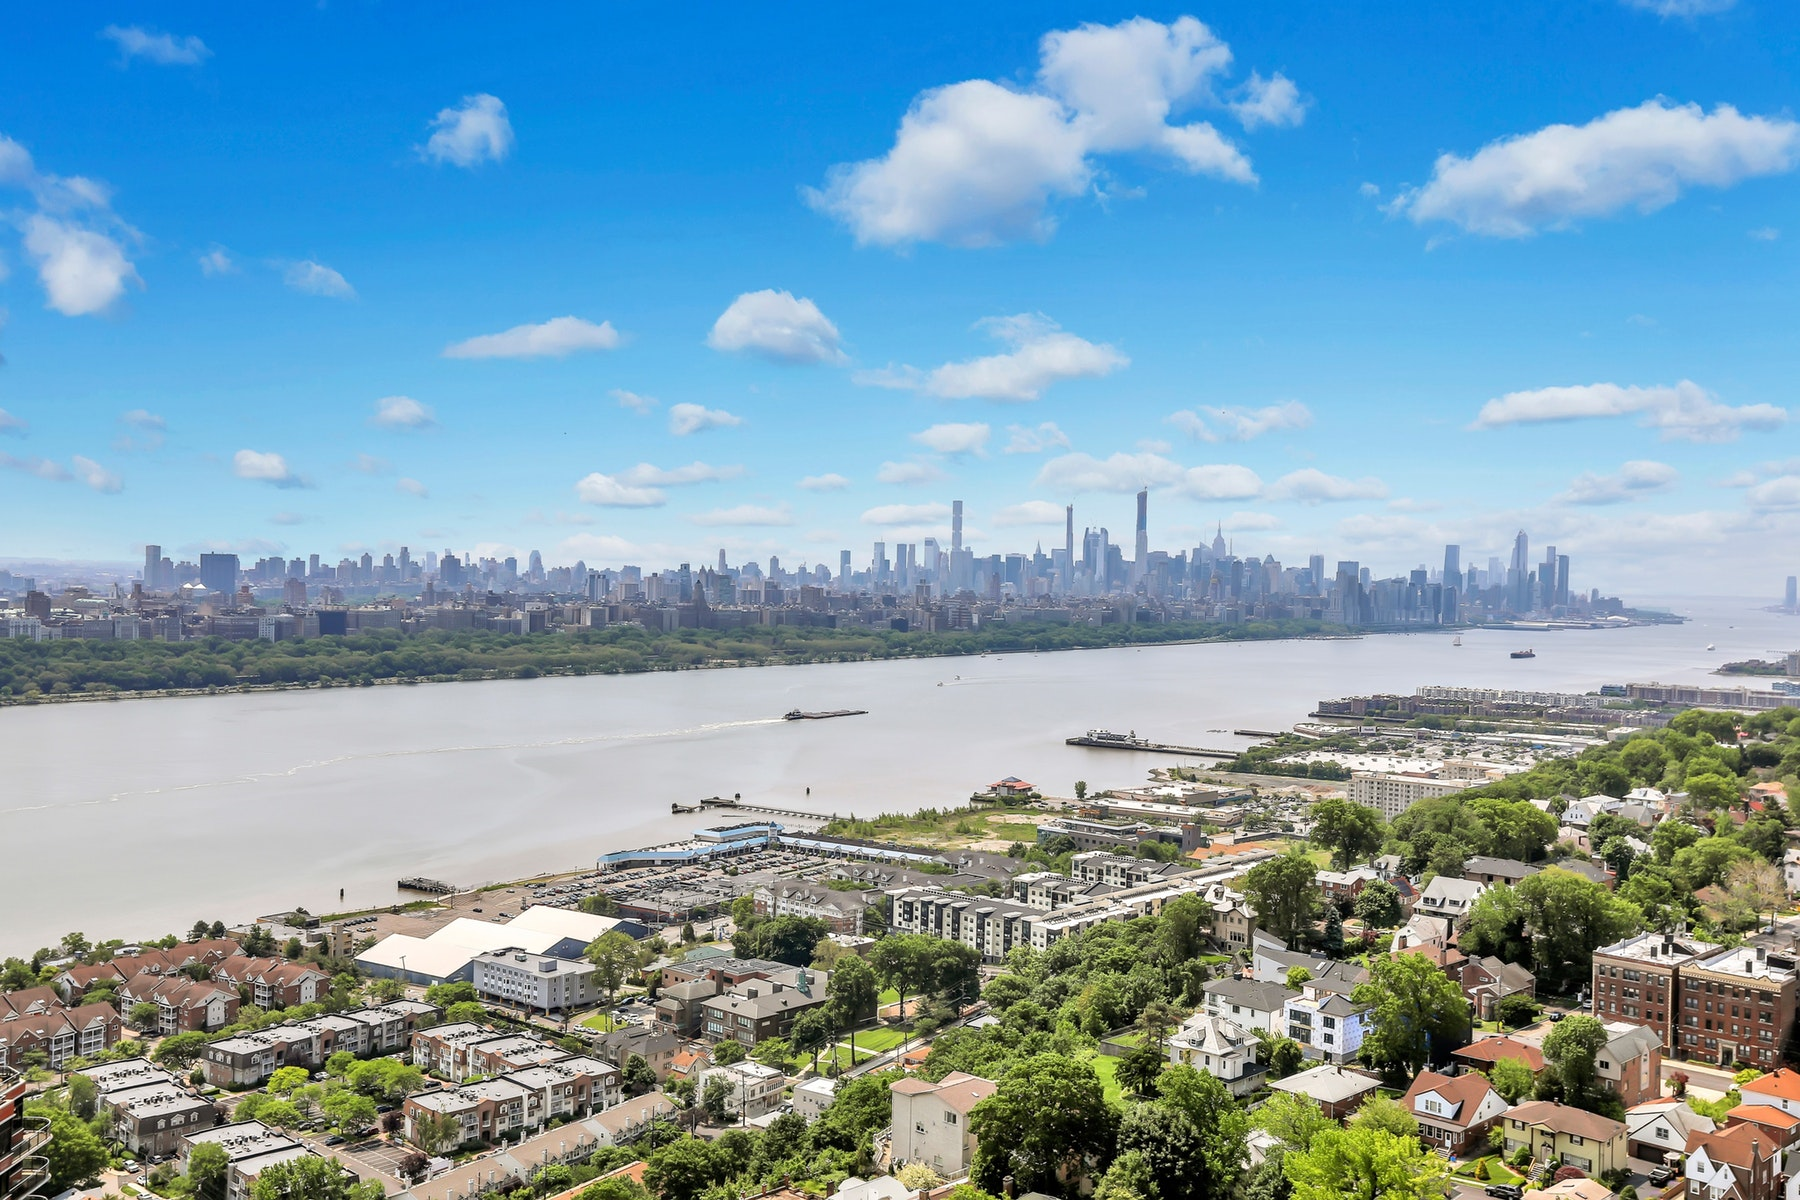 condominiums для того Продажа на Winston Towers 200 Winston Ave #2915, Cliffside Park, Нью-Джерси 07010 Соединенные Штаты